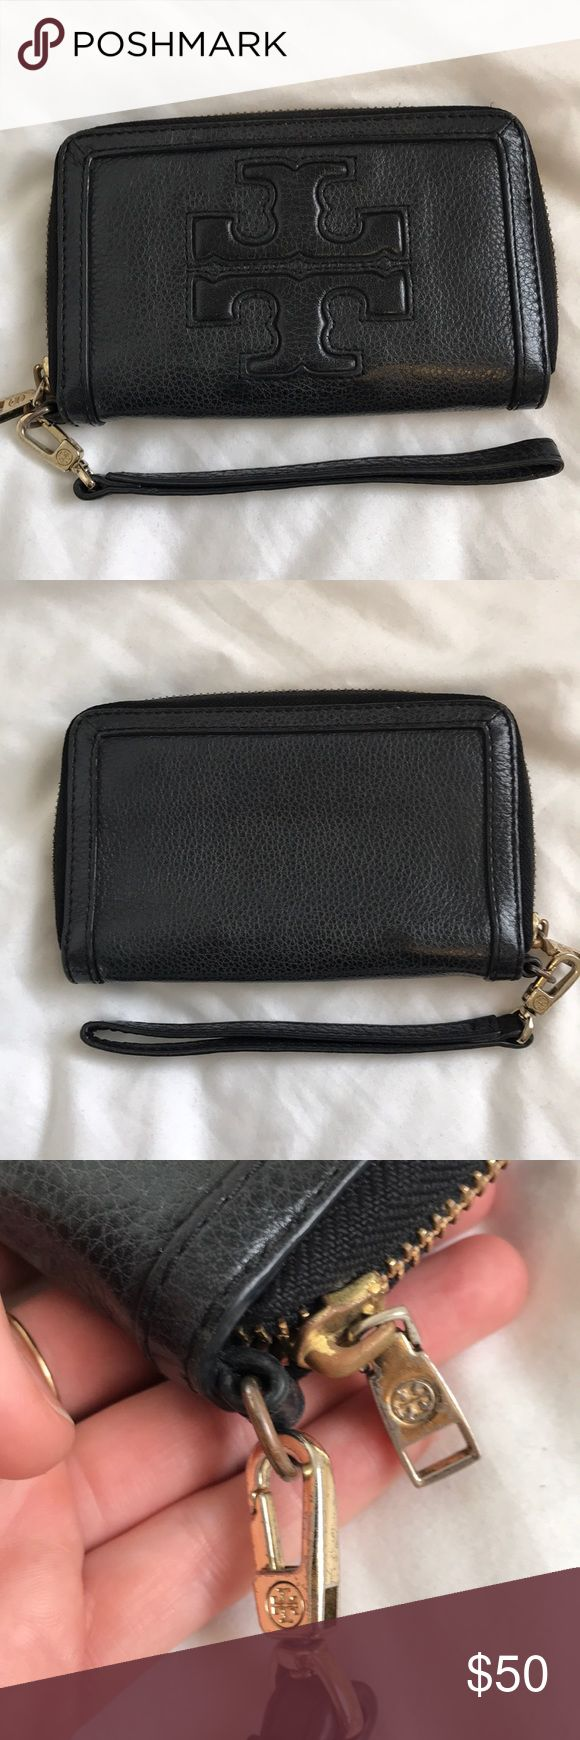 Tory Burch wristlet wallet, black pebbles leather So useful! Great condition besides the scratching on the exterior hardware (pictured) Tory Burch Bags Clutches & Wristlets